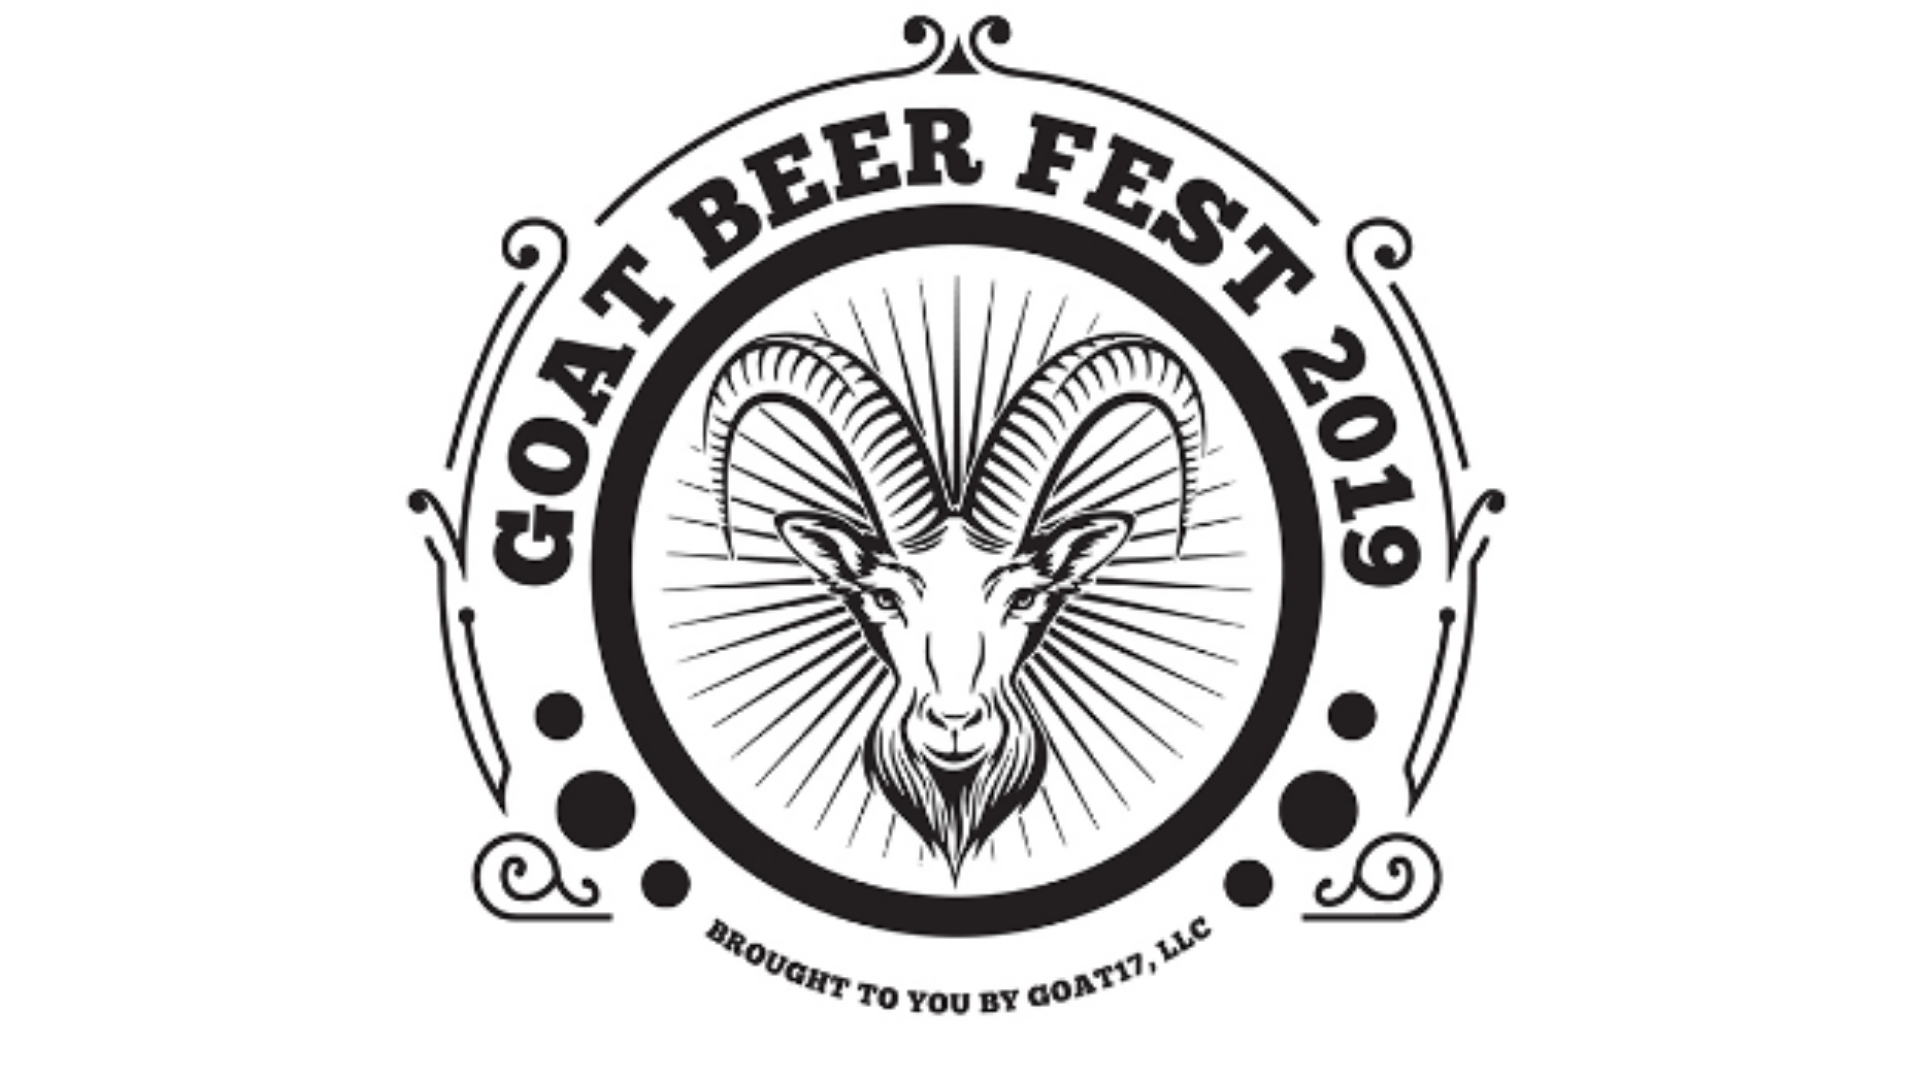 Join us for the 3rd Annual G.O.A.T. Beer Fest!